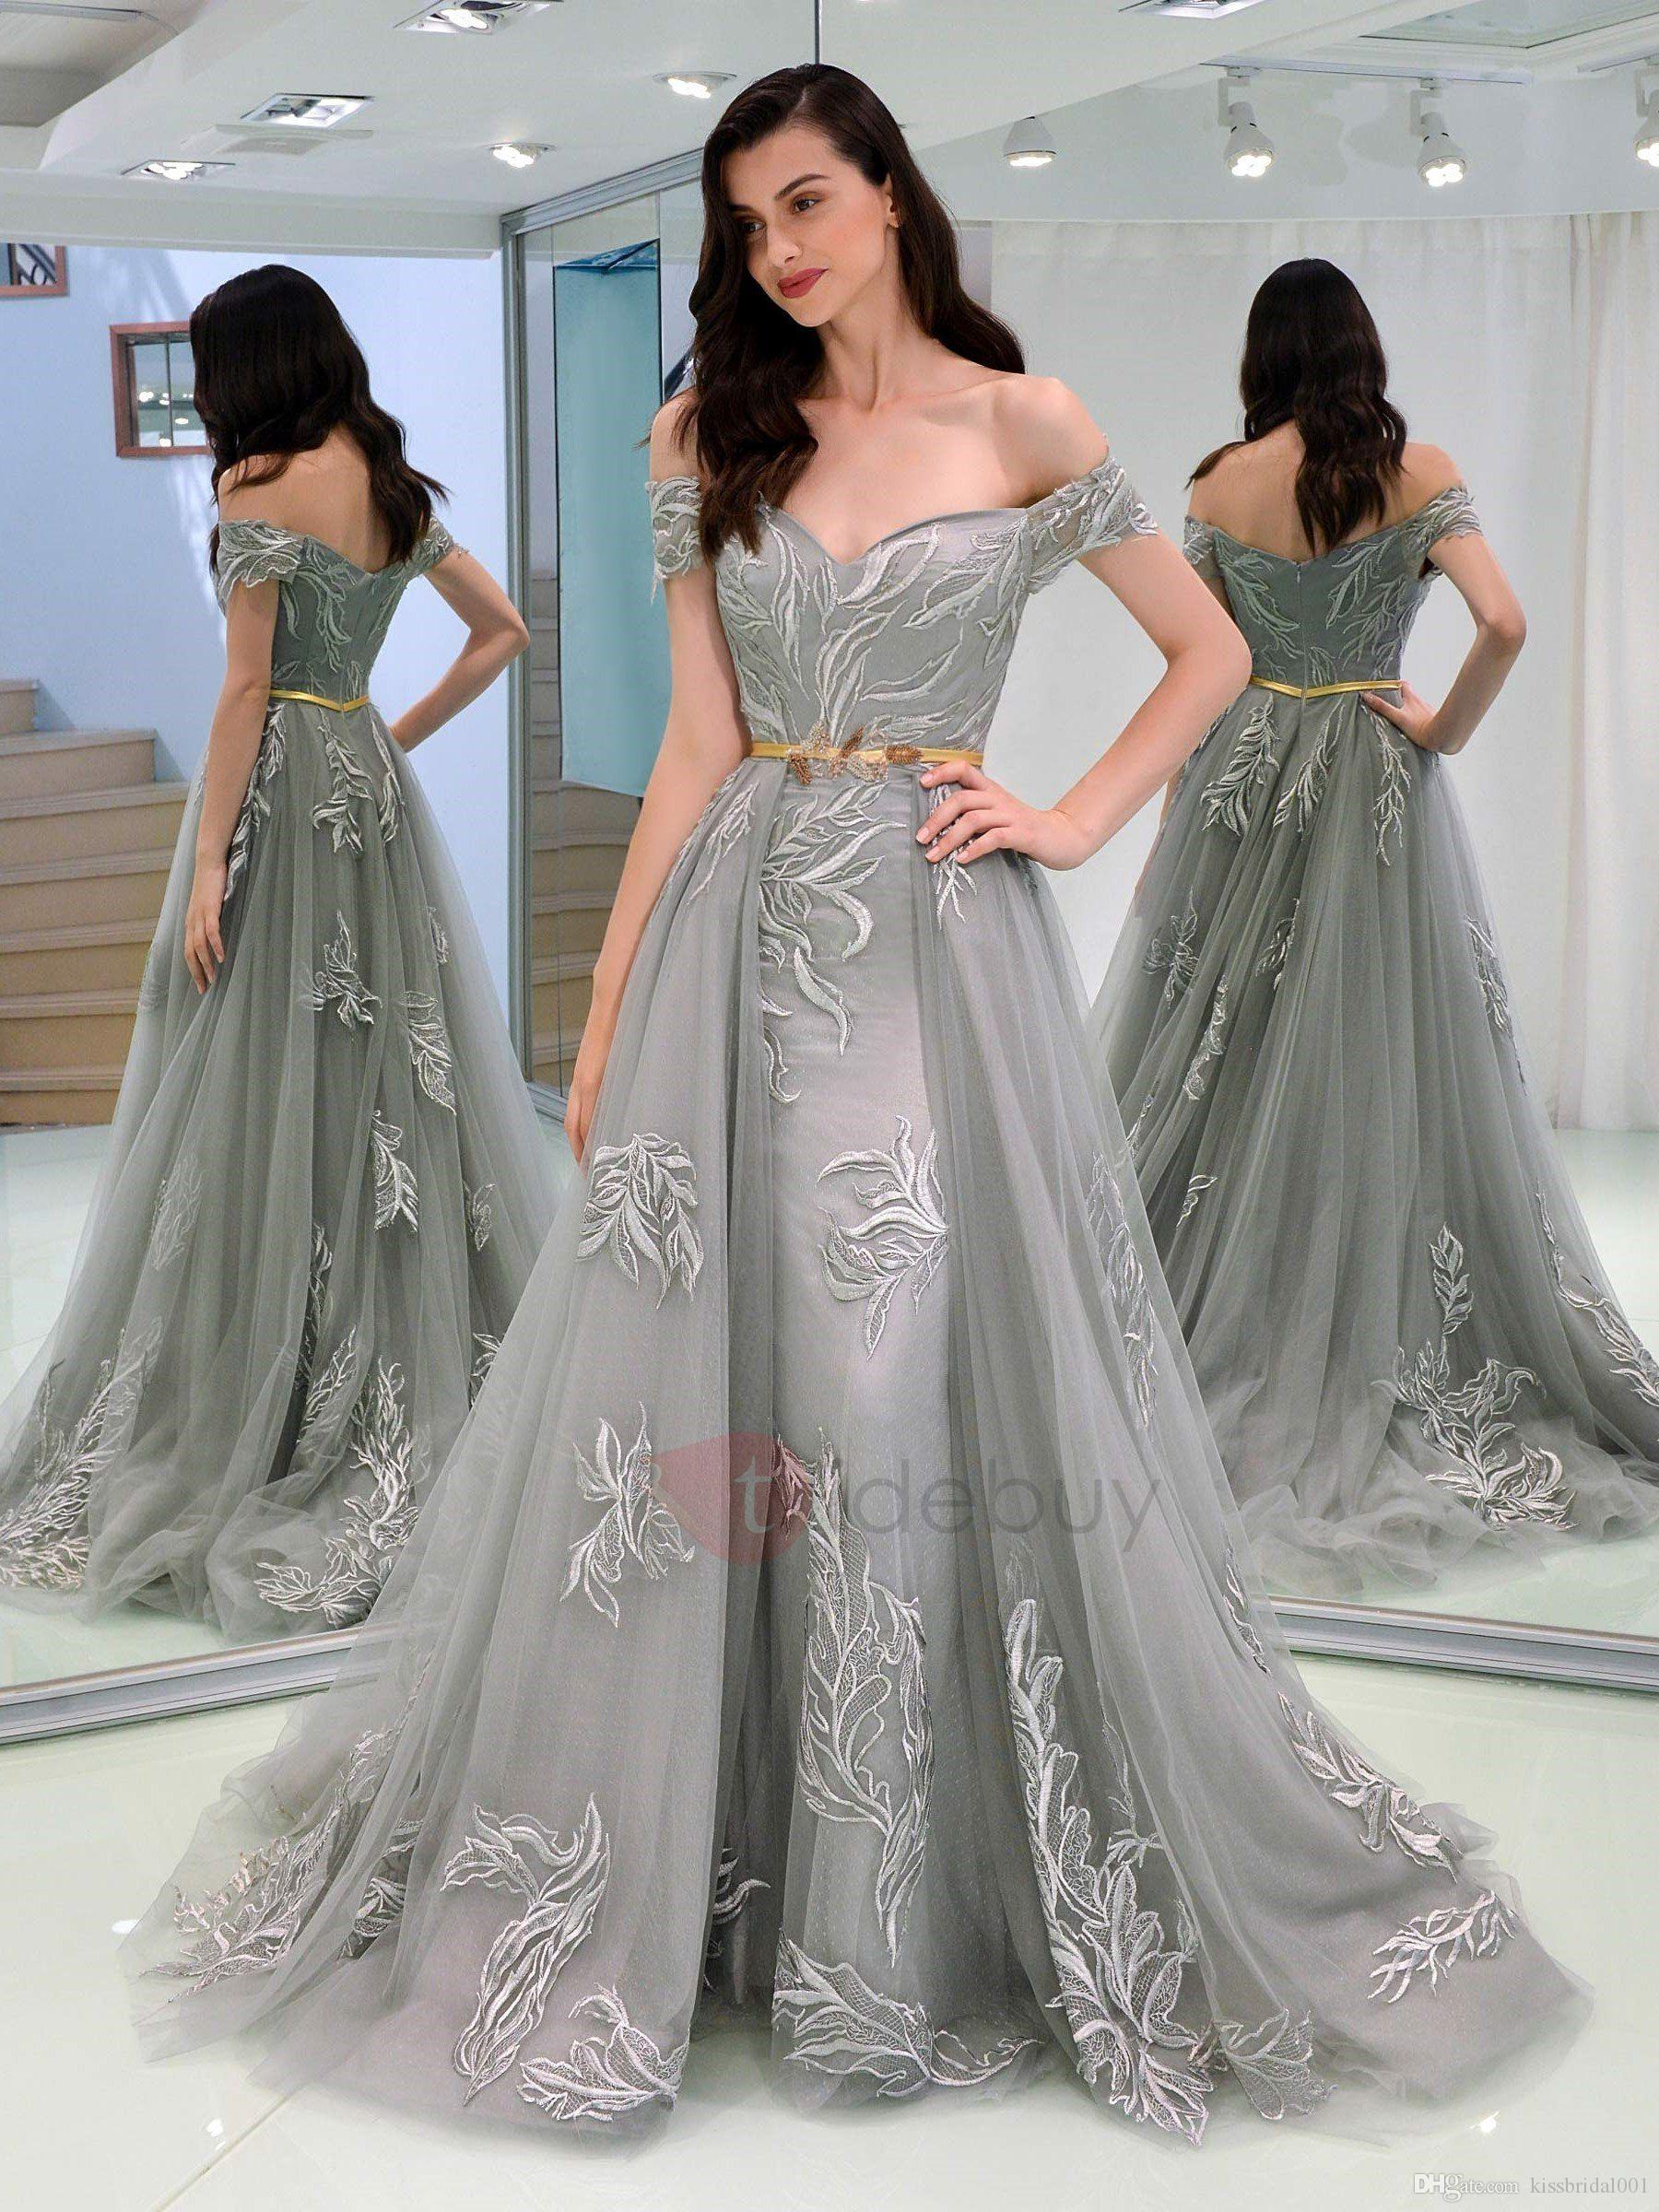 c42f78b7b6 Gray Prom Dresses With Detachable Train Mermaid Off Shoulder Lace Tulle  Overskirts Evening Gowns Celebrity Red Carpet Formal Dress No Sash Cute  Short Prom ...